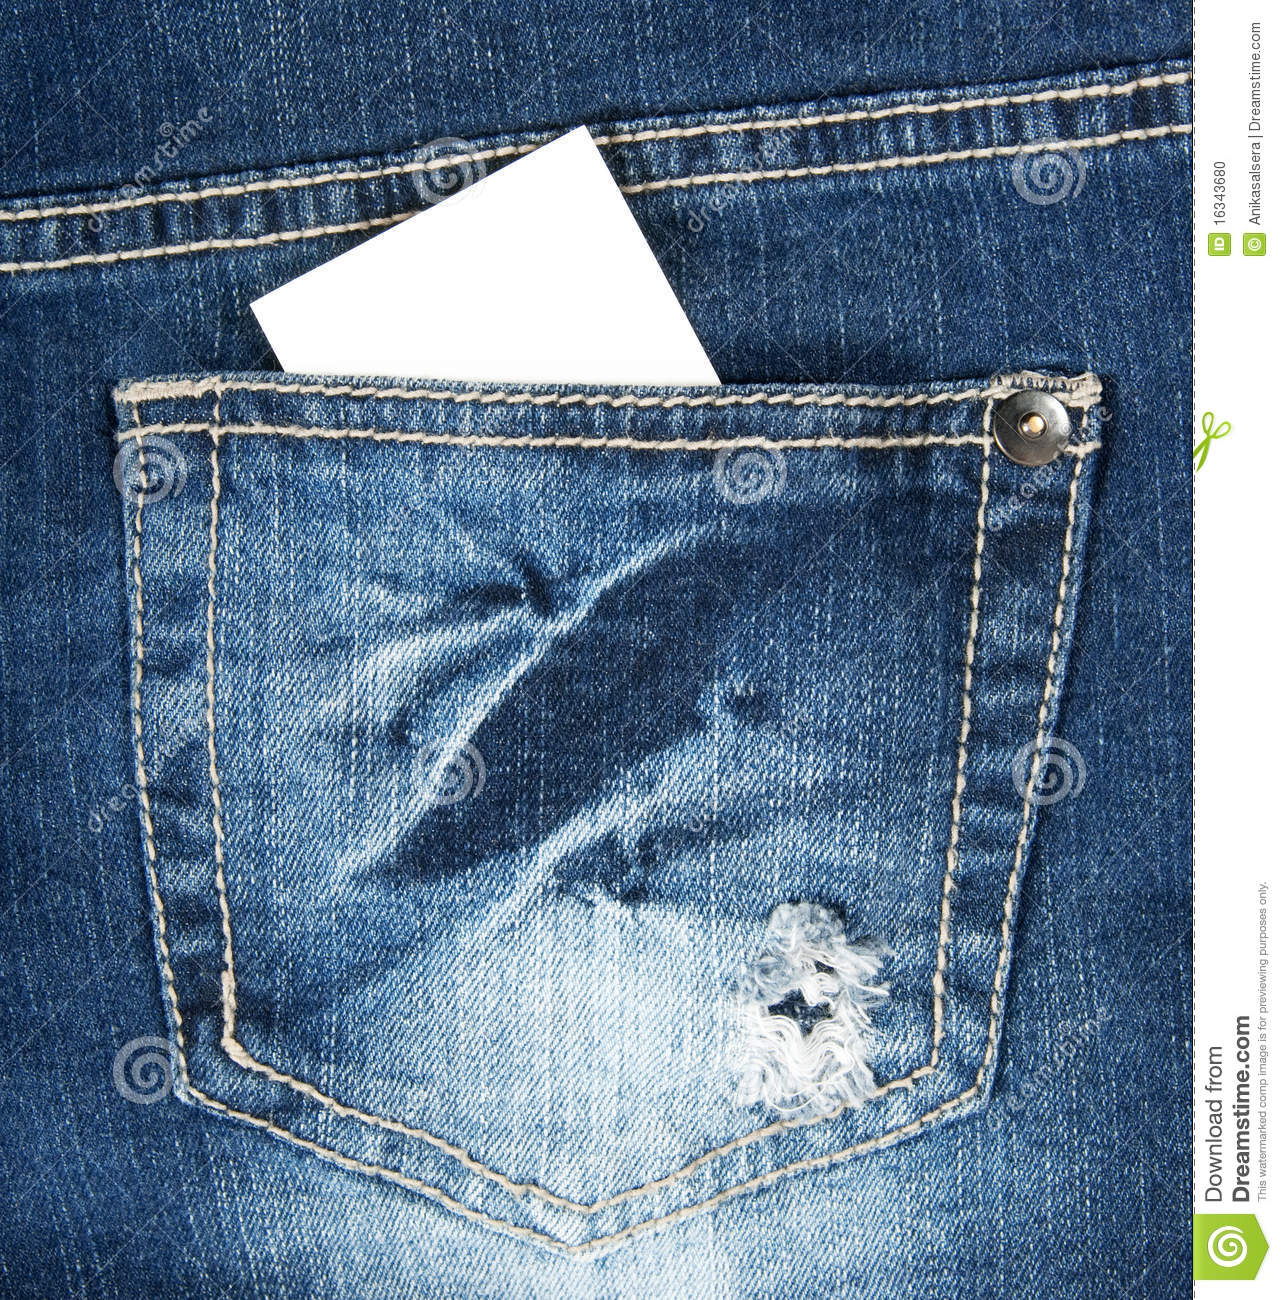 Blank business card in blue jeans pocket stock photo image of blank business card in blue jeans pocket reheart Image collections